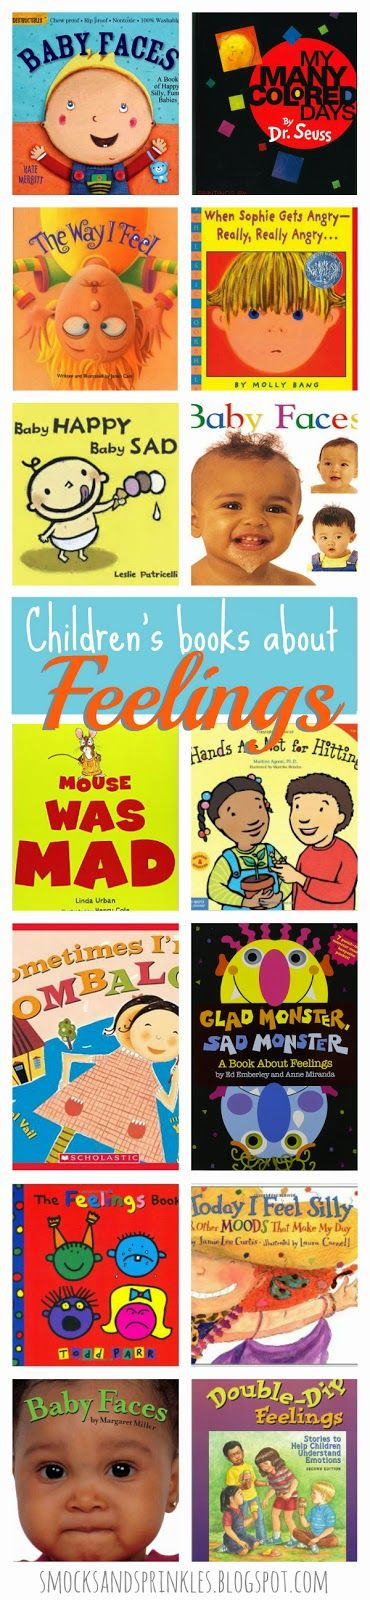 Books to read with children - Feelings